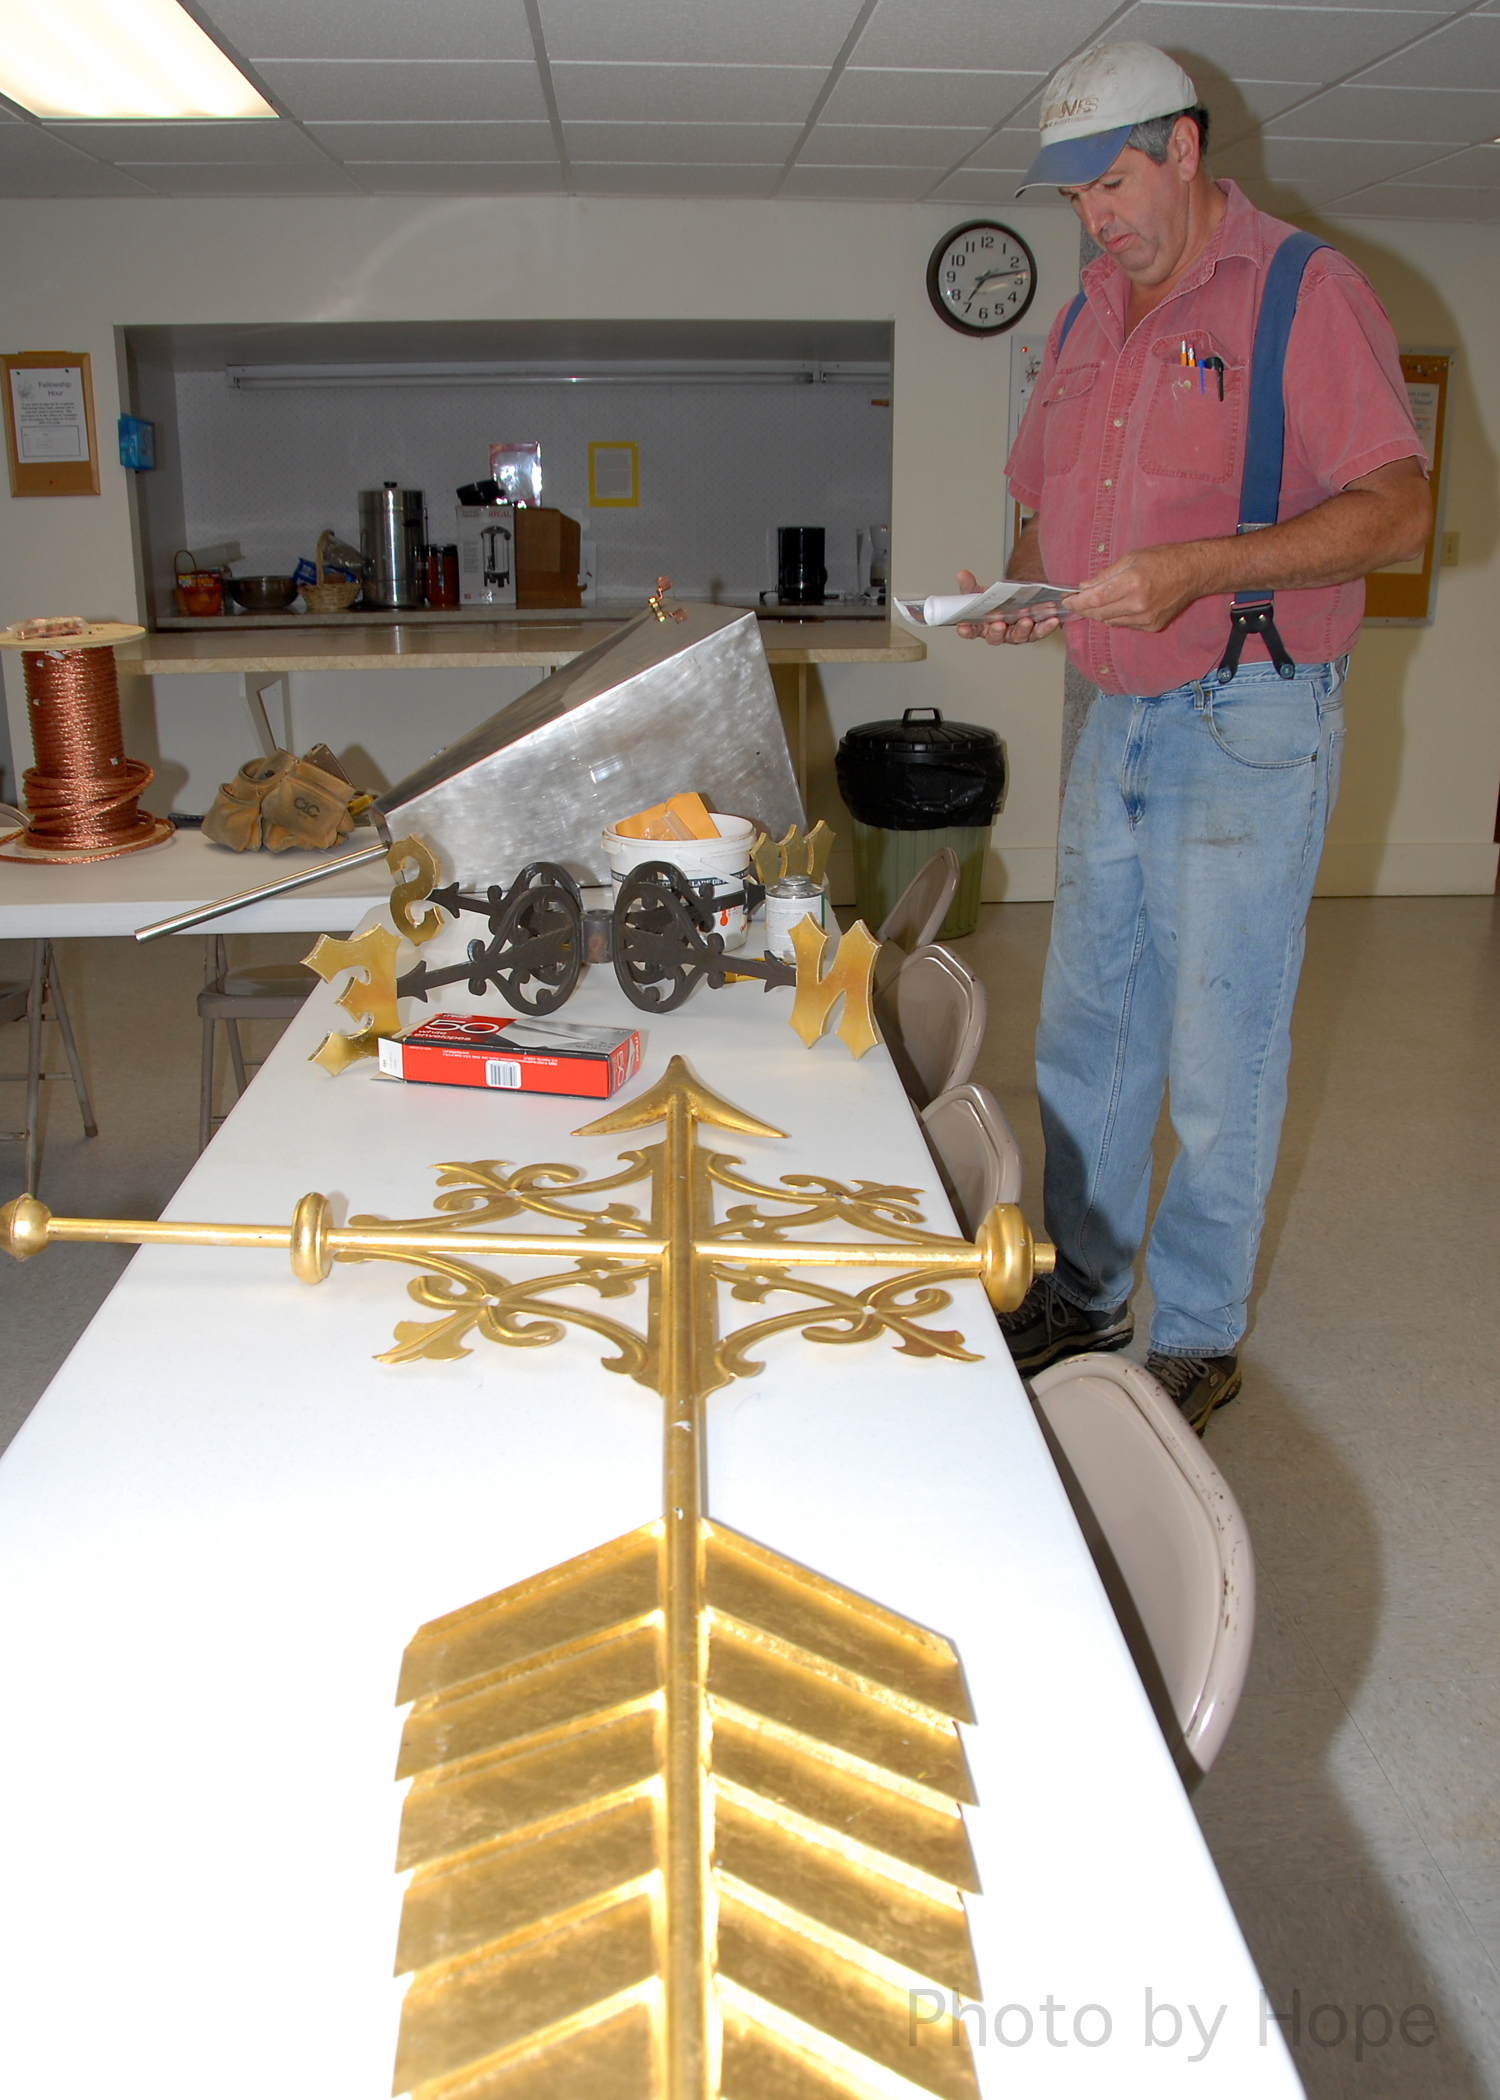 Jeff assembling the weather vane